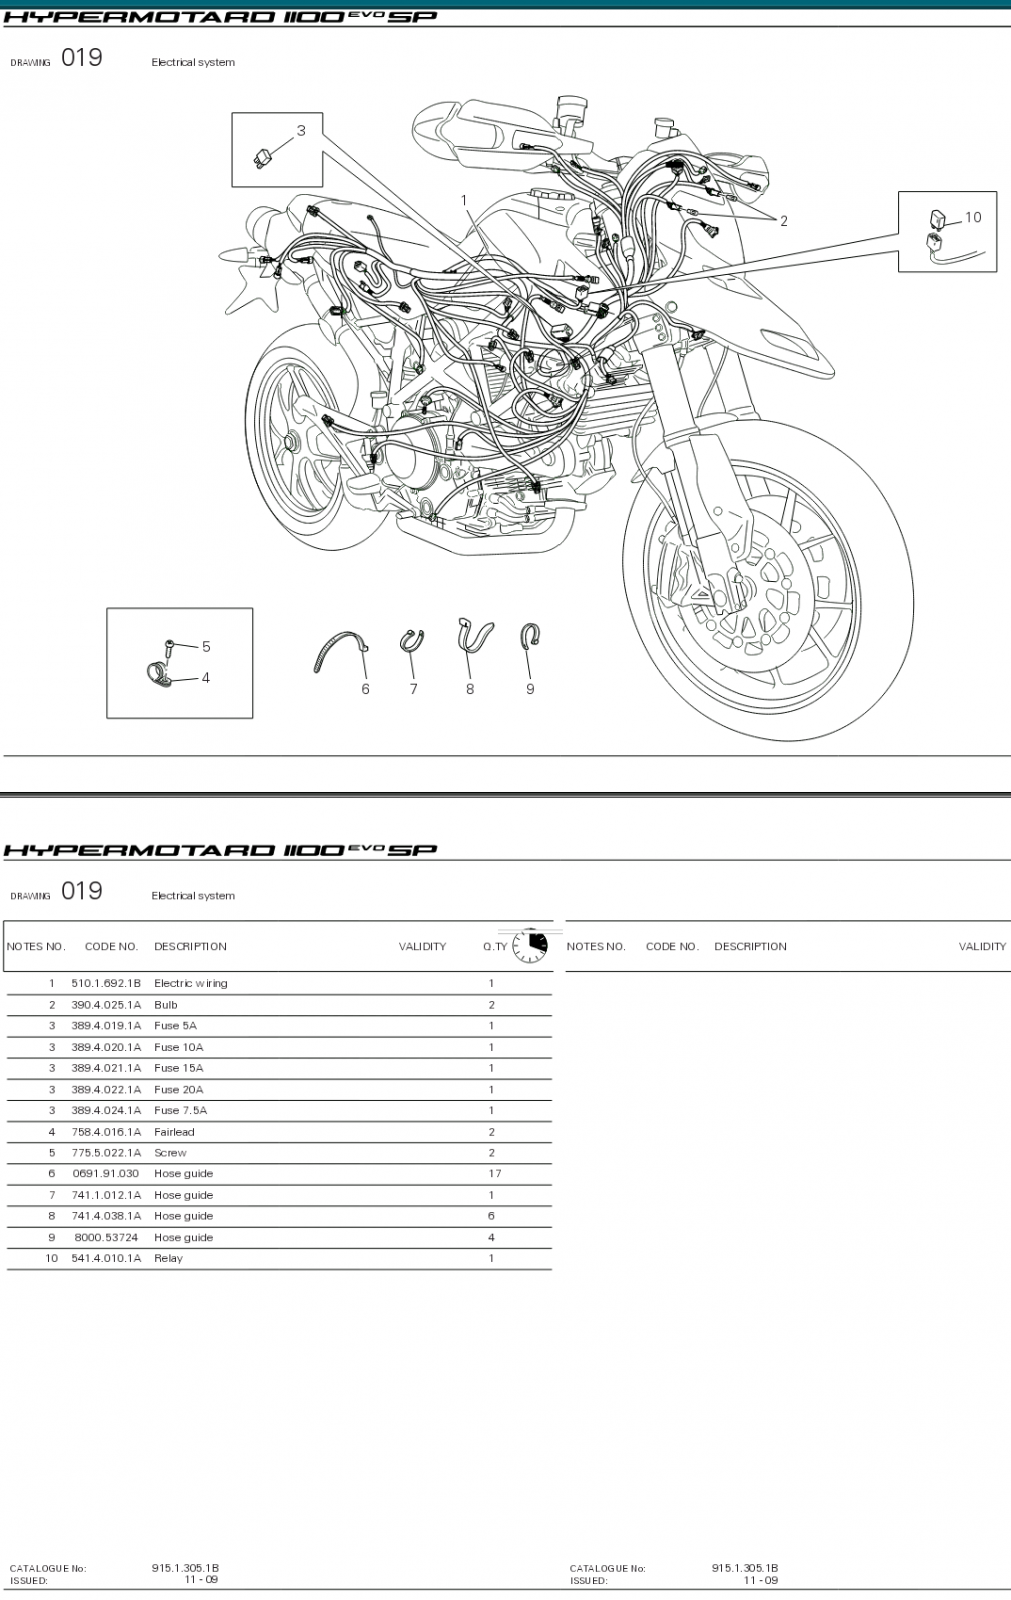 Ducati Hypermotard 1100 Wiring Diagram Electrical Diagrams 796 Engine Valve Dead Needed Page 3 Forum Corse